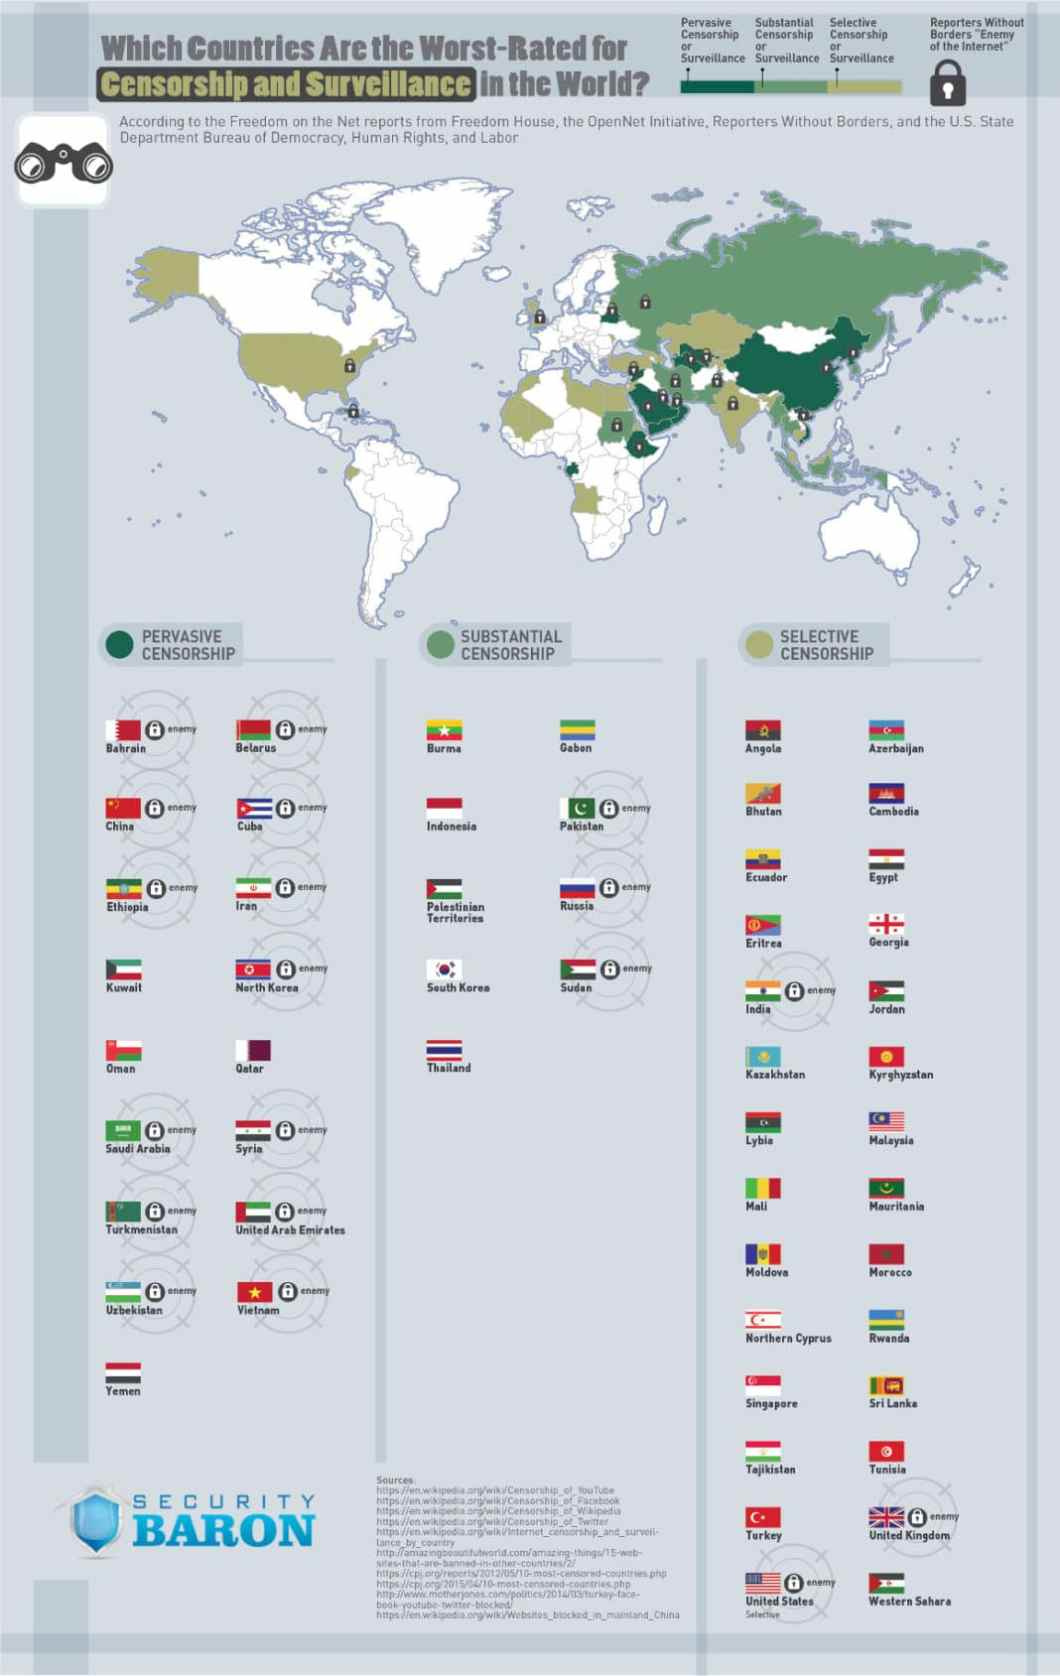 Big Brother is Watching You: Scorecard of Censorship and Surveillance Around the World - Infographic